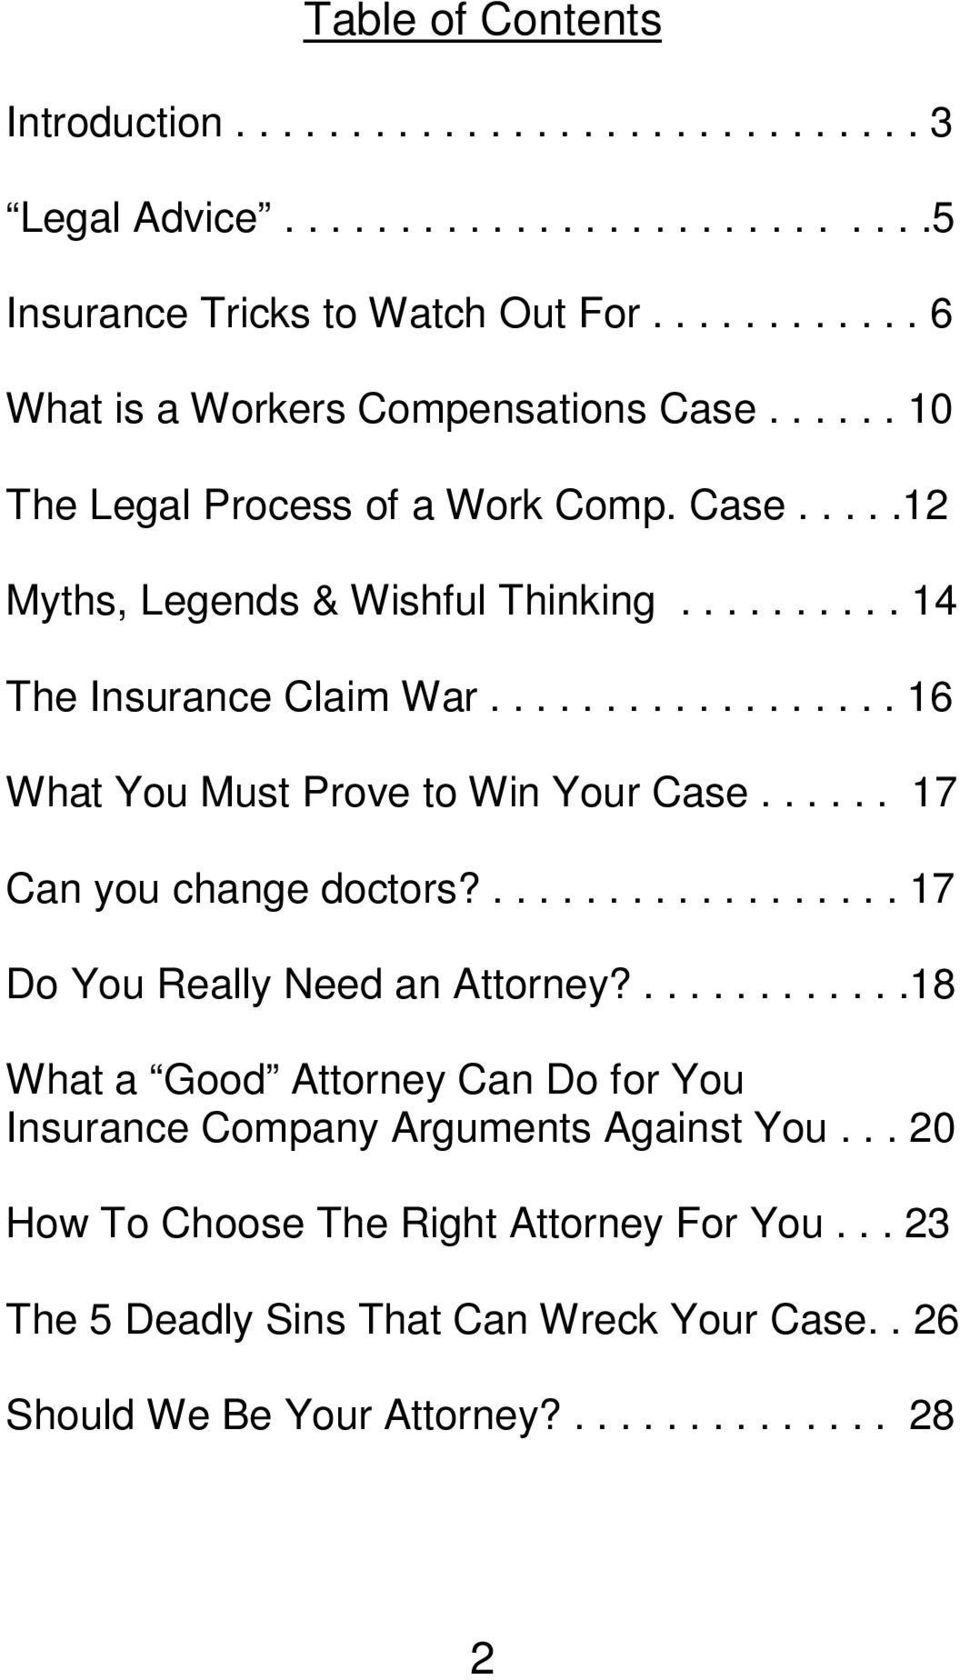 ................. 16 What You Must Prove to Win Your Case...... 17 Can you change doctors?.................. 17 Do You Really Need an Attorney?